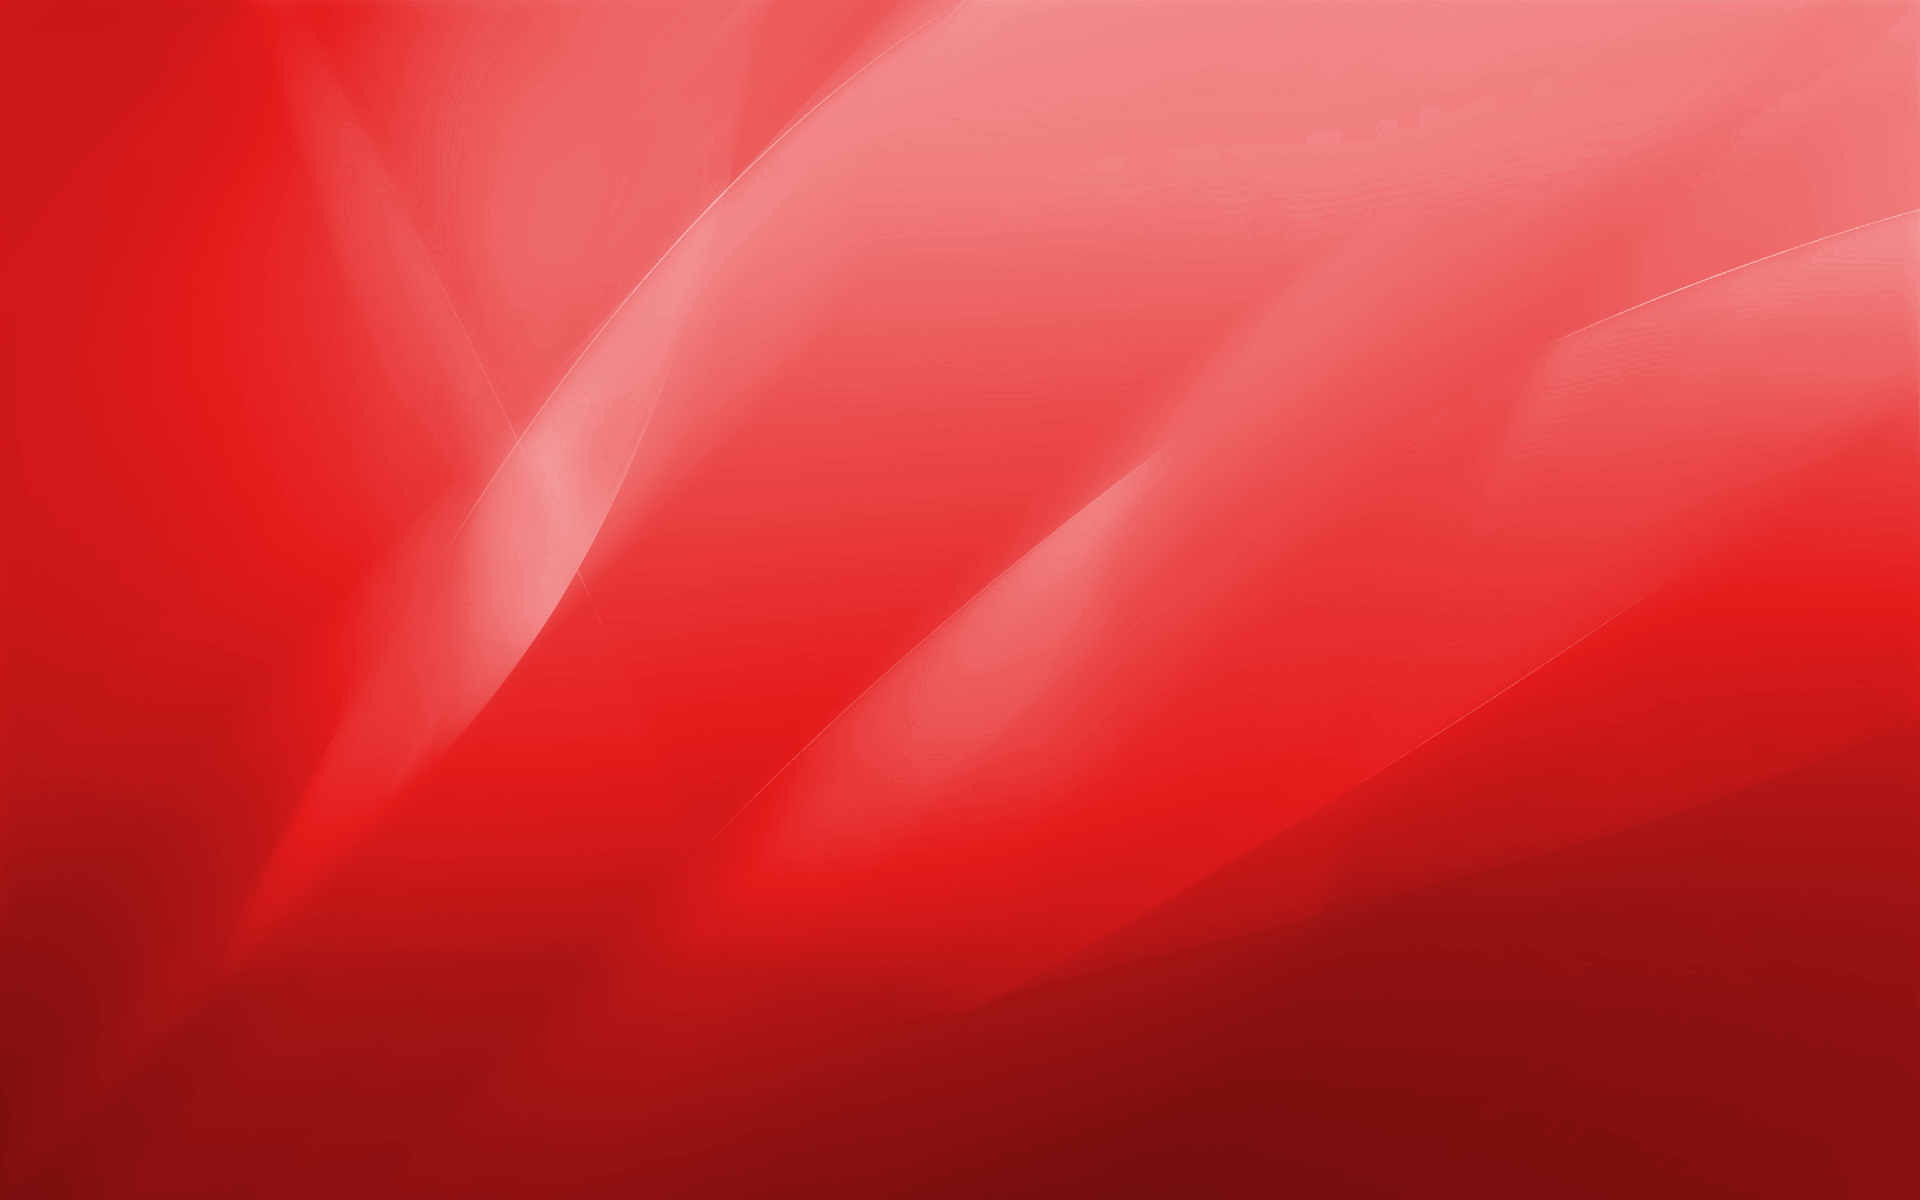 Red-Backgrounds-Wallpaper-HD-20131